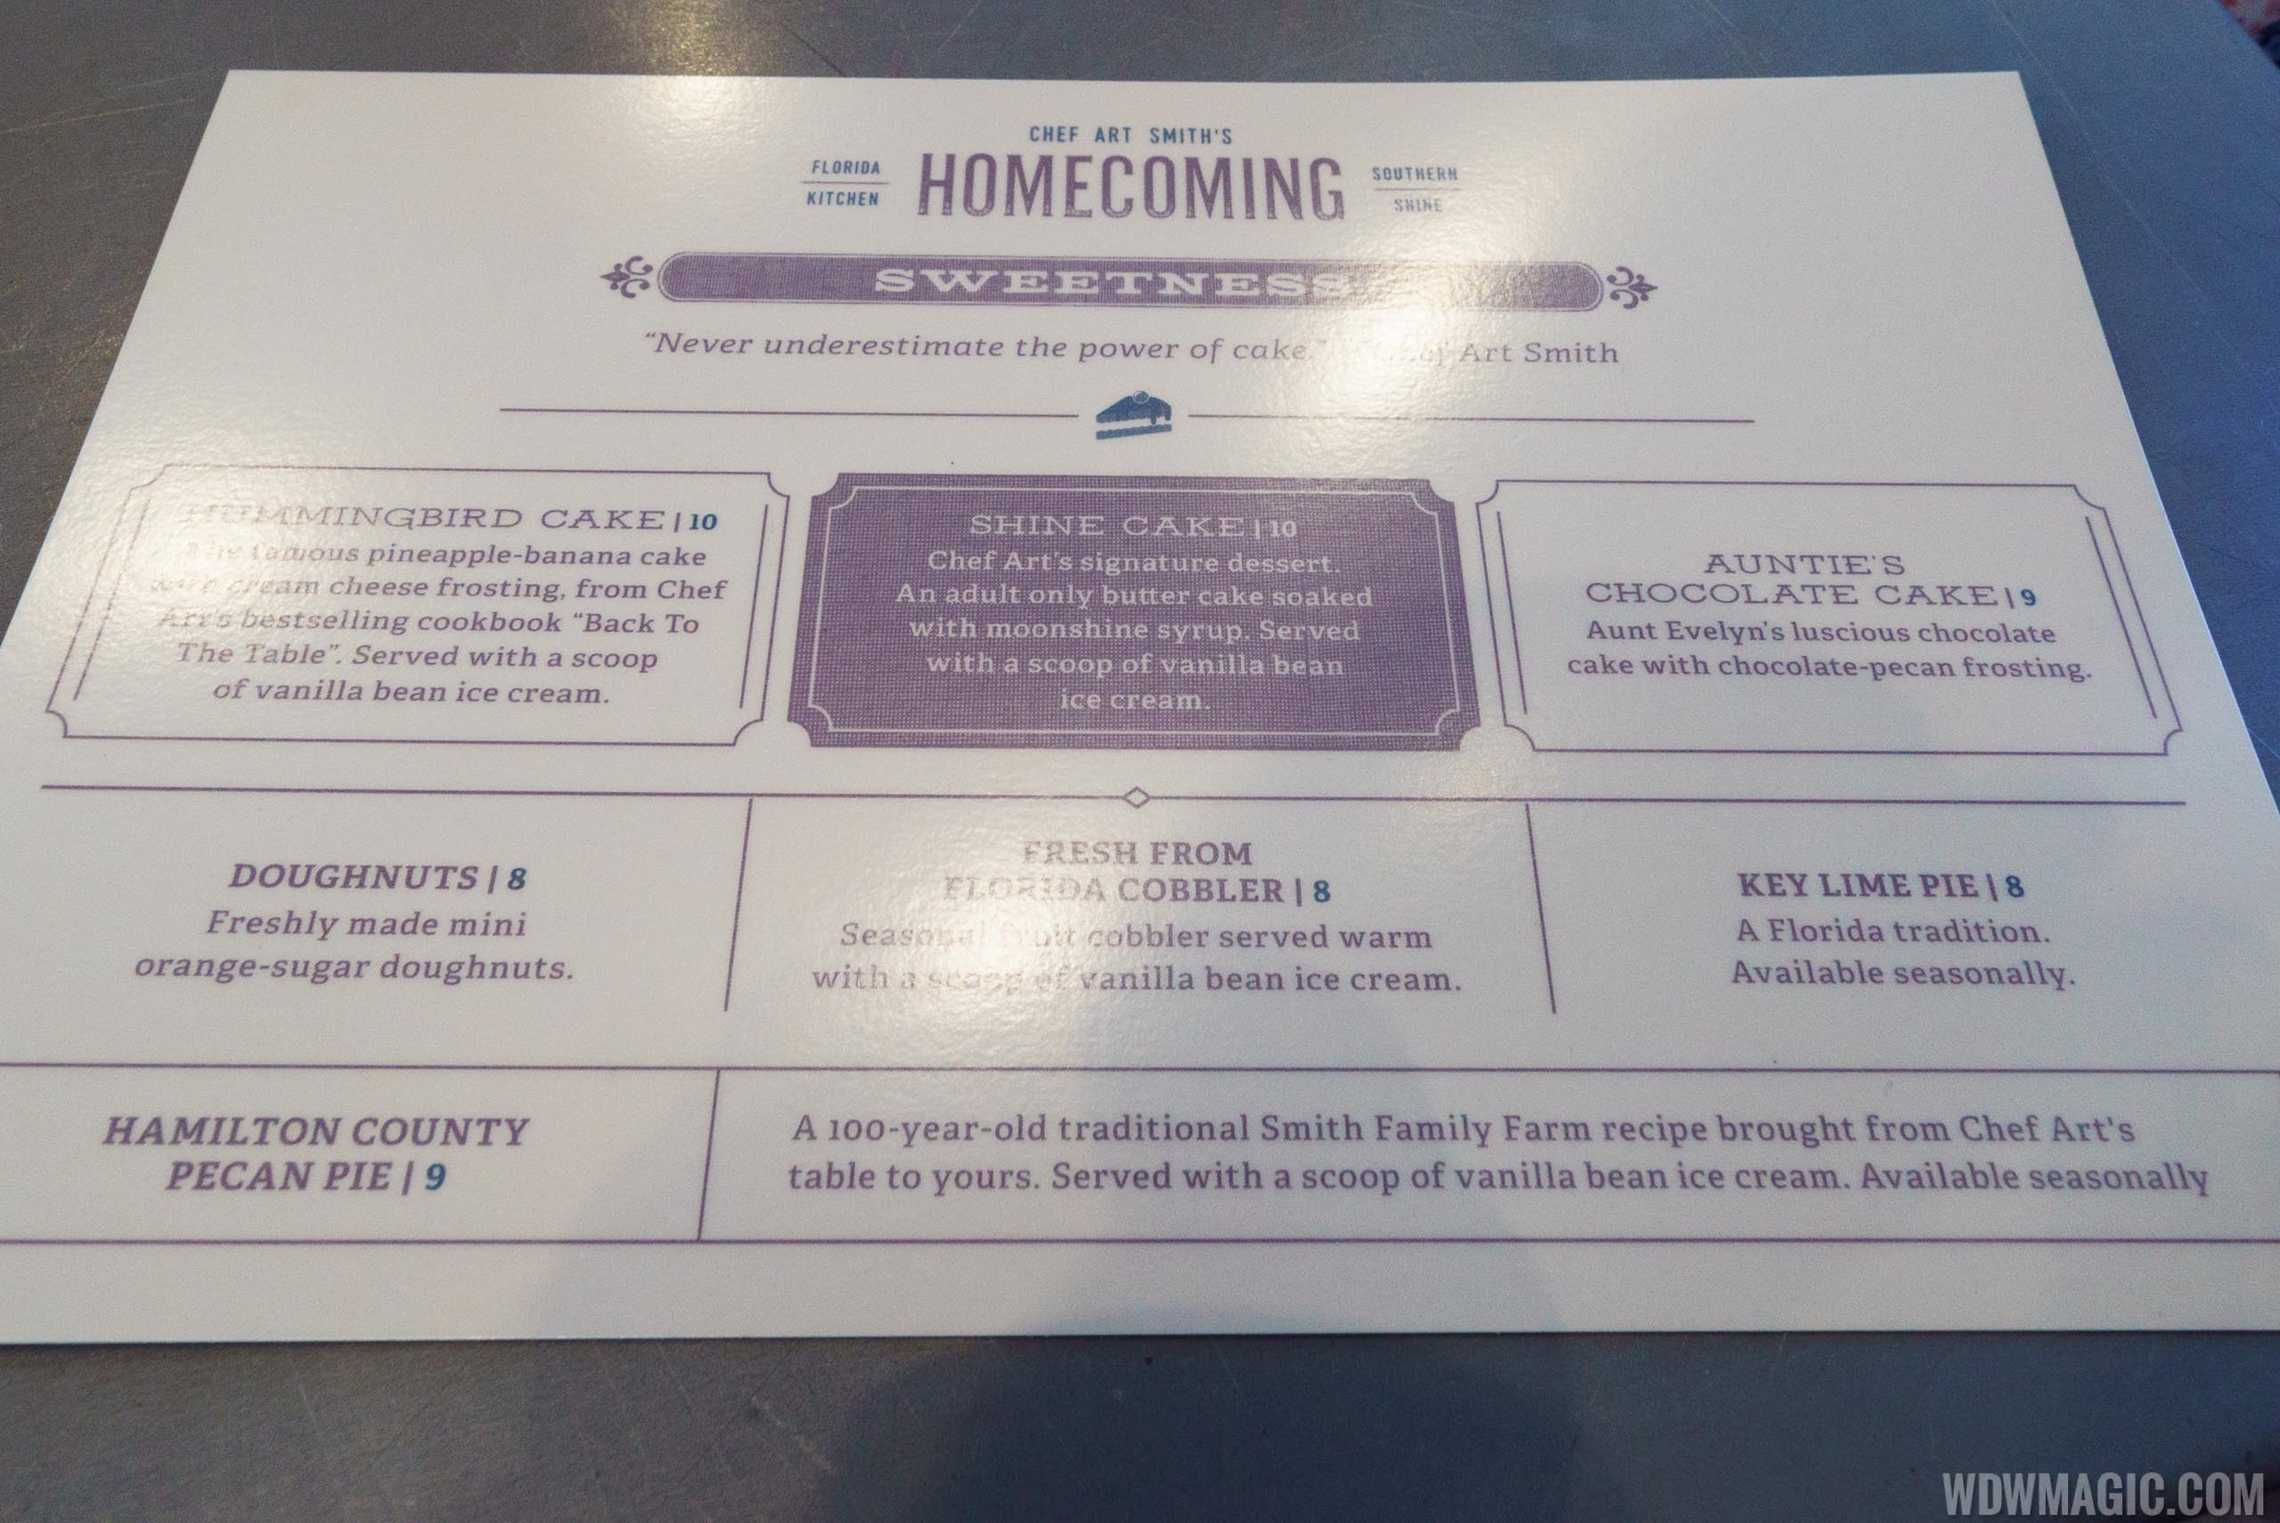 Homecoming florida kitchen overview photo 35 of 36 for Magic kitchen menu